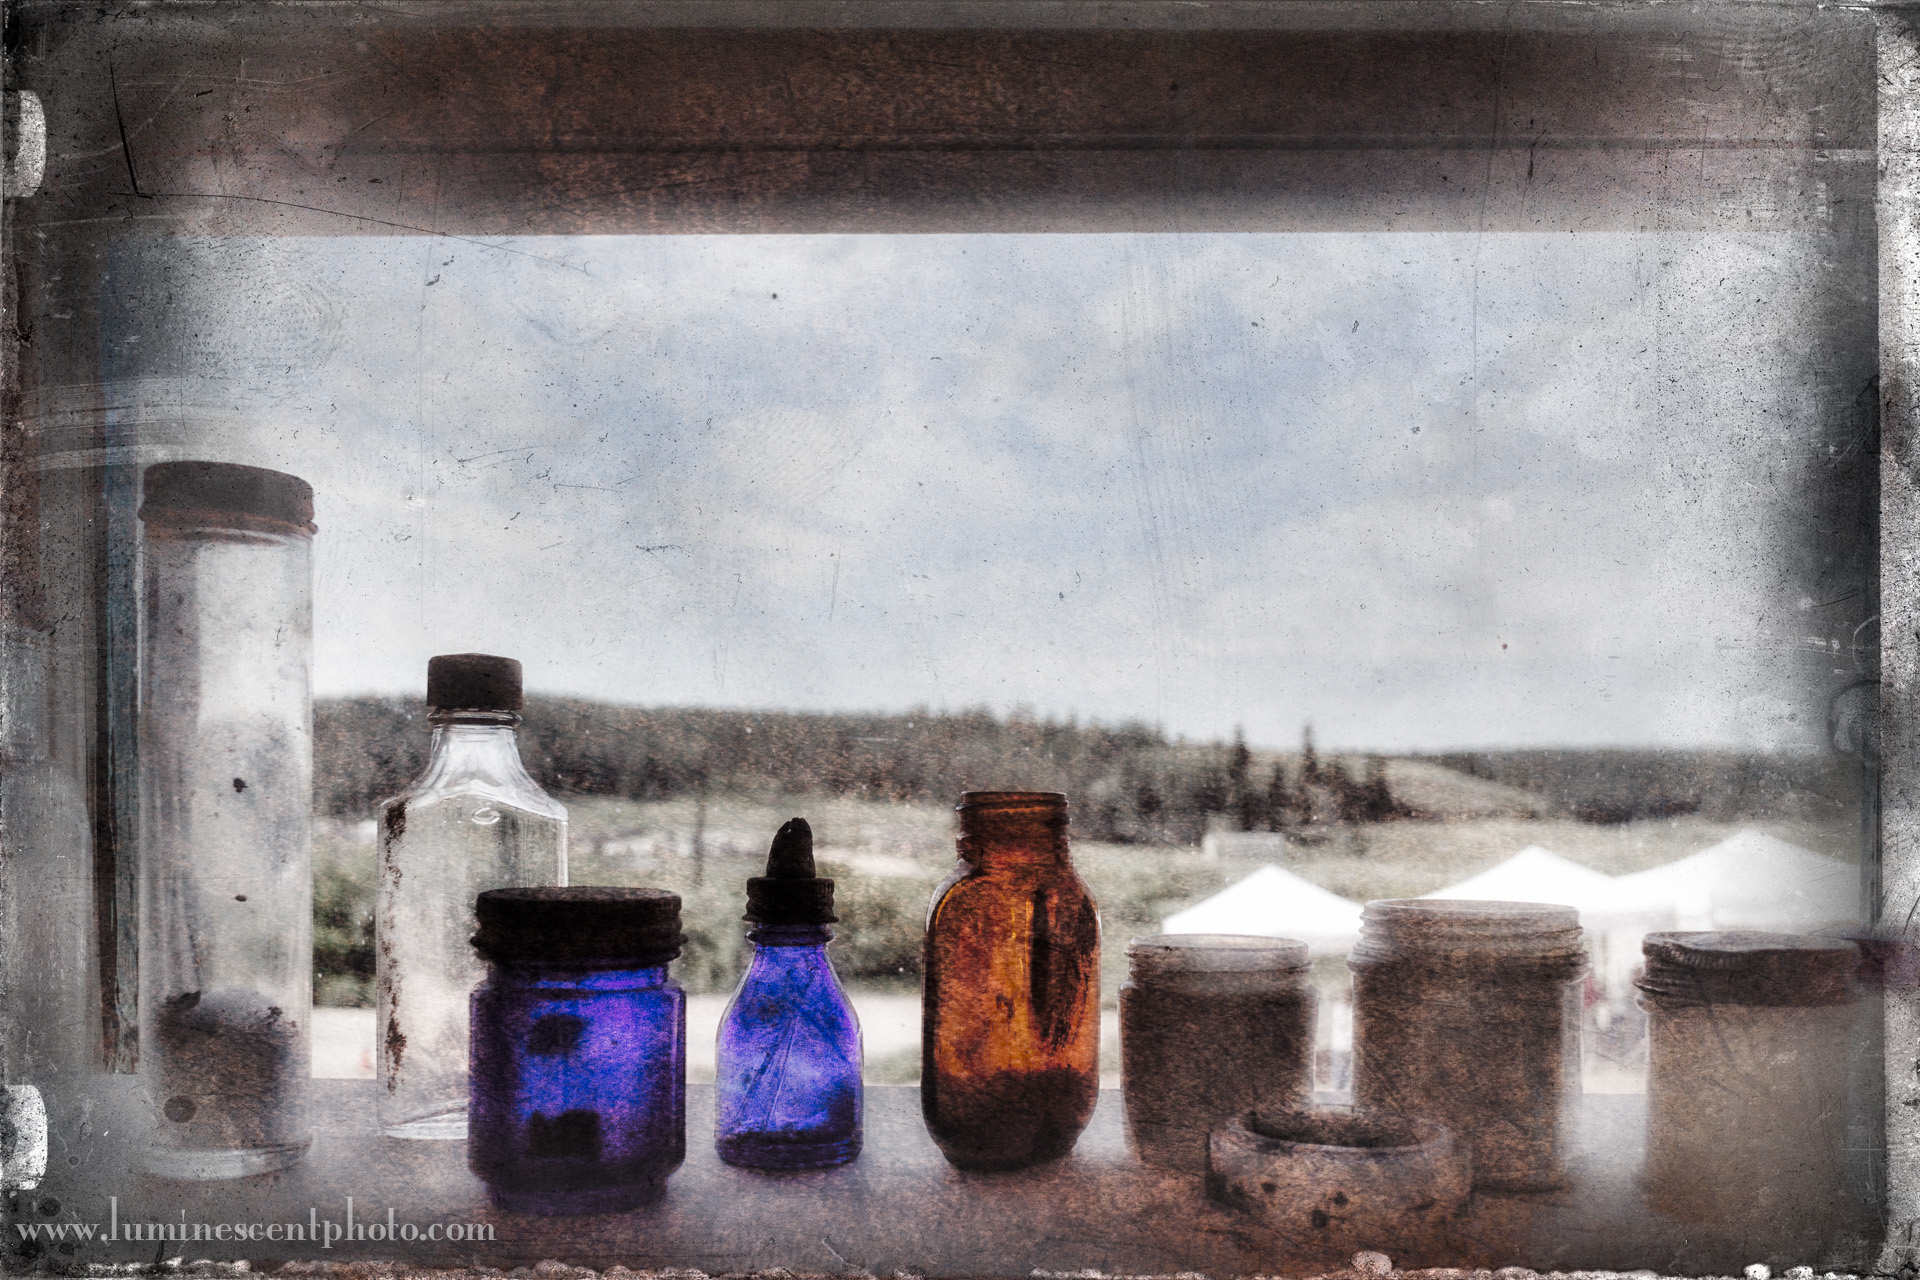 Bottles and jars, Florissant, CO. Nikon 1 V2 image processed in Color Efex Pro 4 with Flypaper texture overlays.